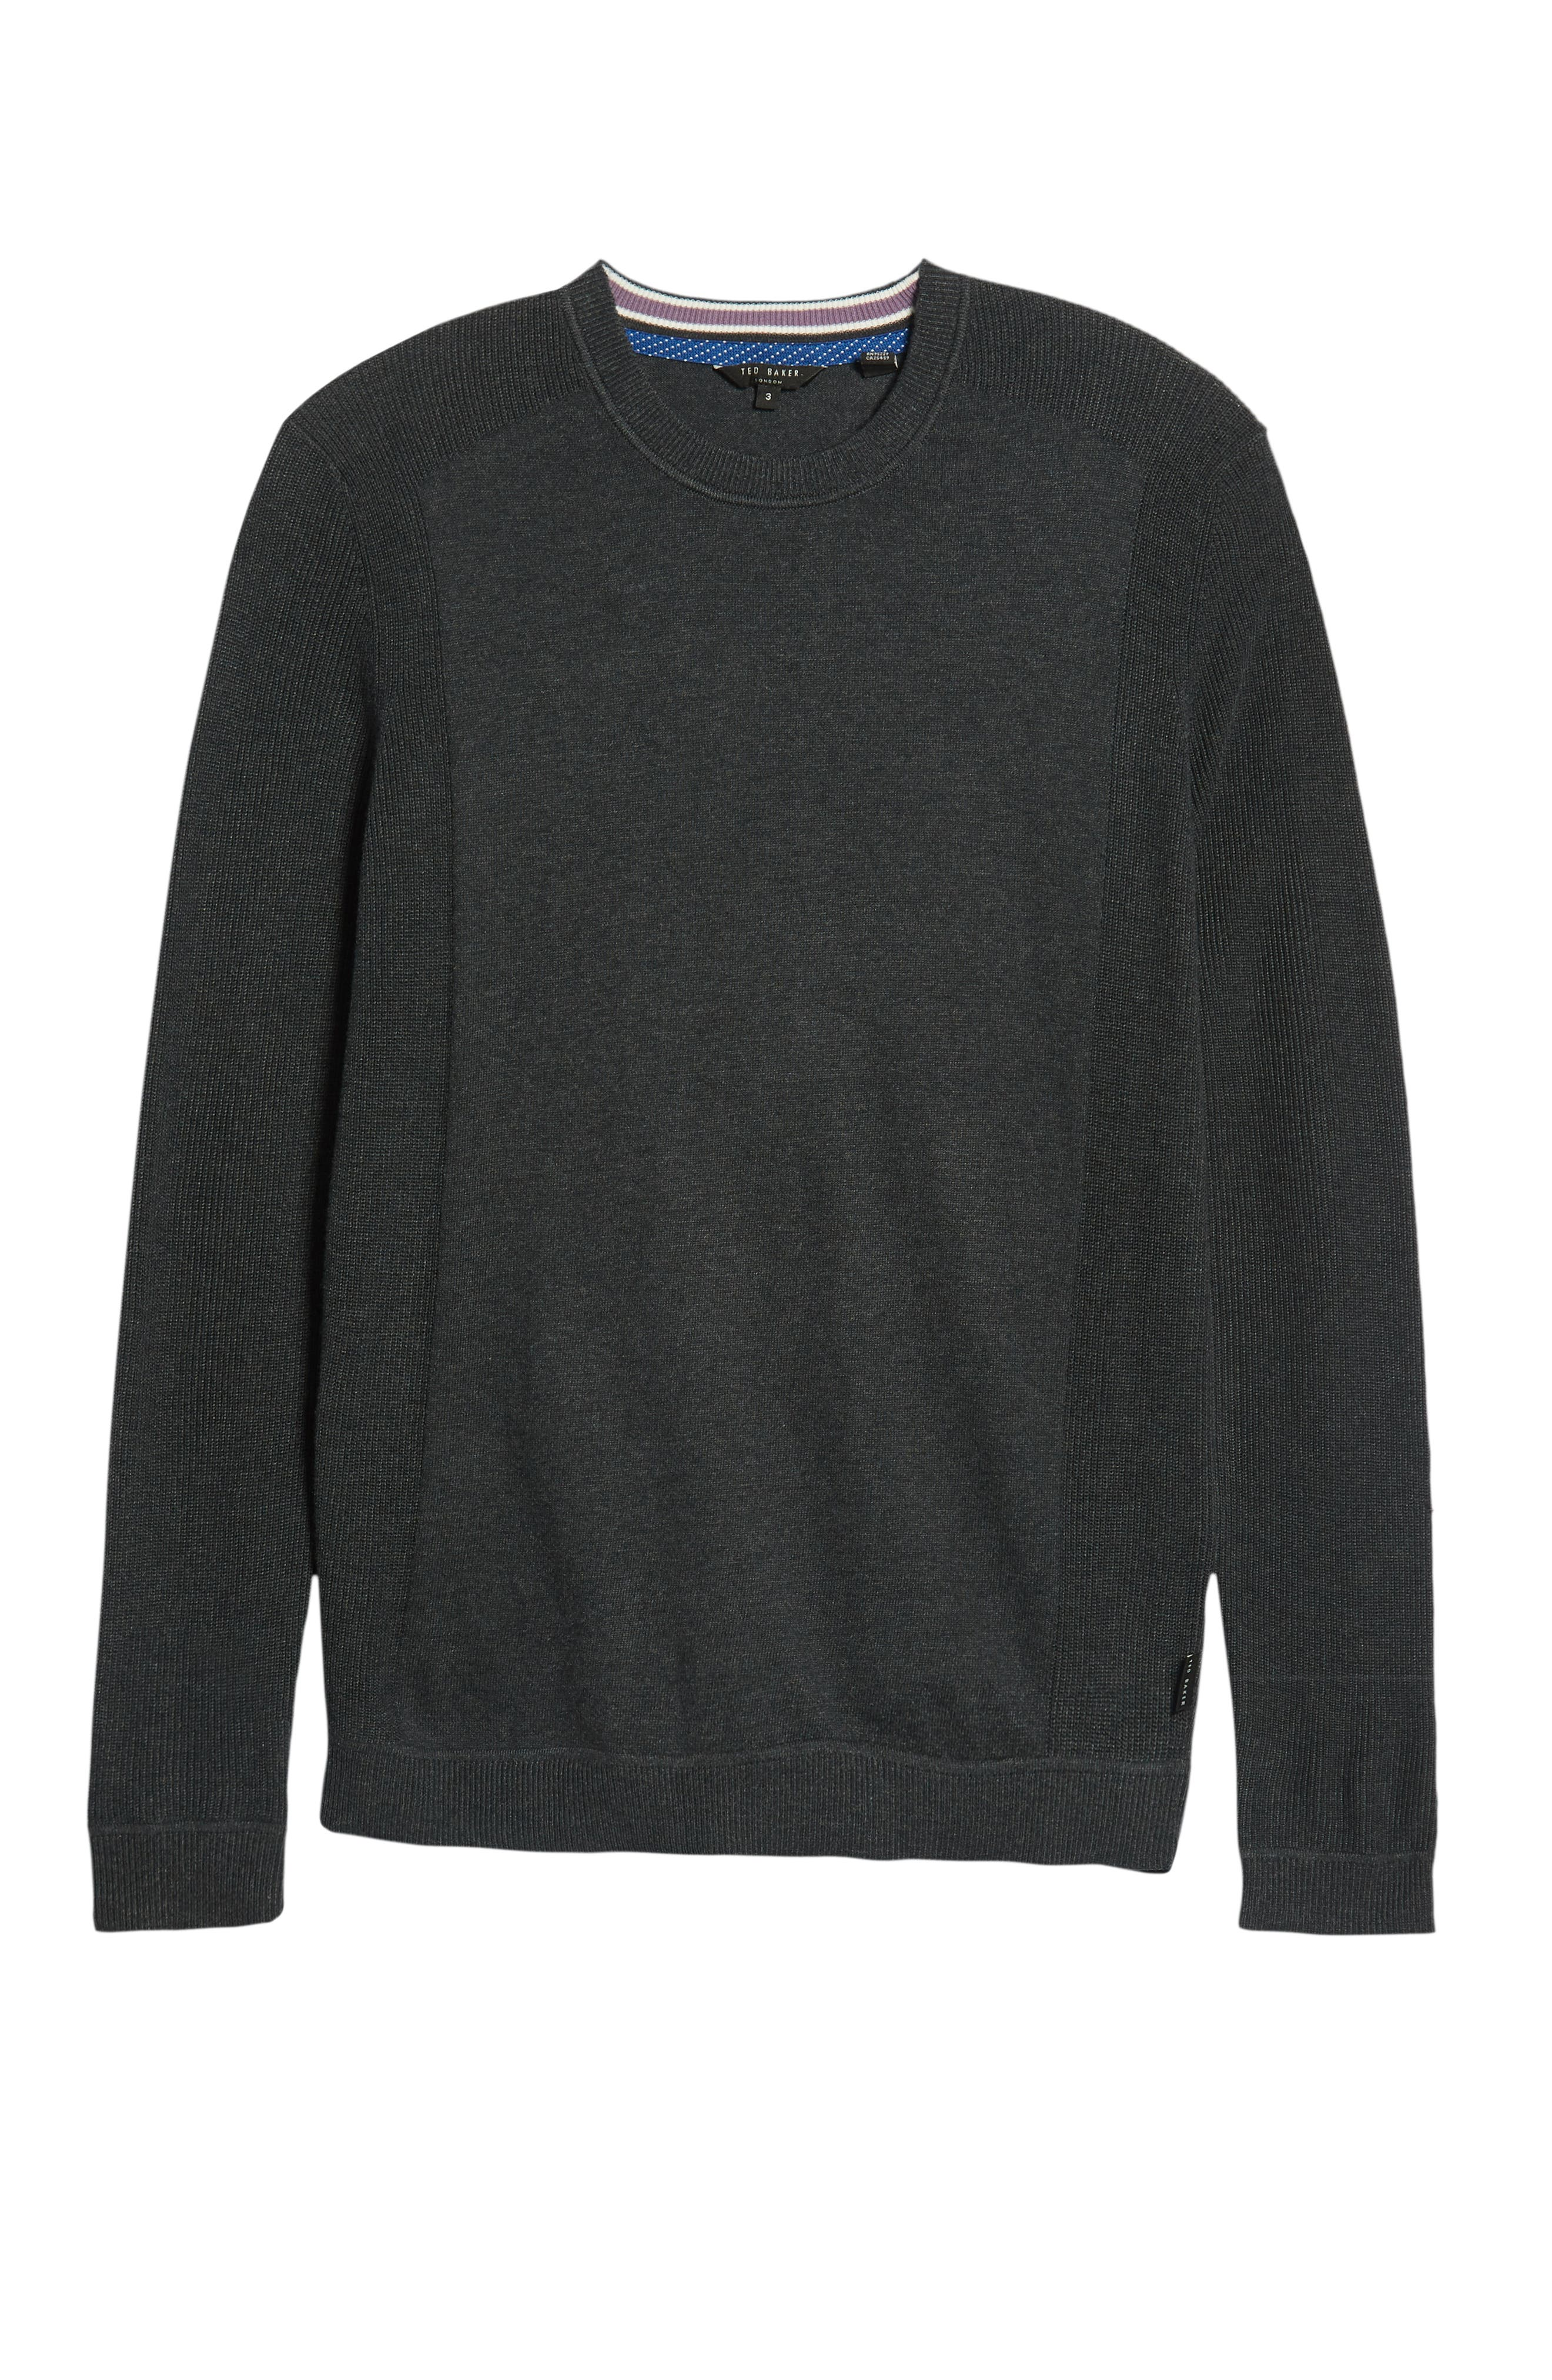 Reversy Slim Fit Crewneck Long Sleeve T-Shirt,                             Alternate thumbnail 6, color,                             CHARCOAL